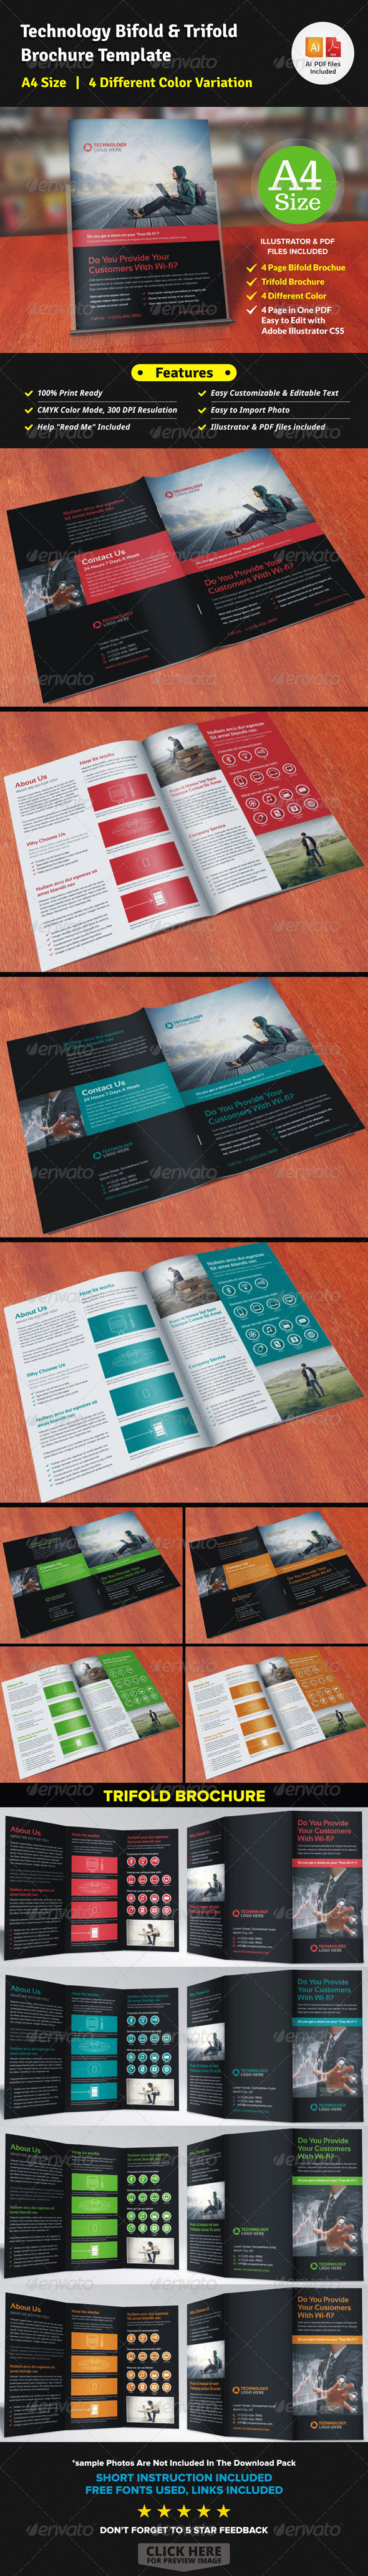 GraphicRiver Technology Bifold & Trifold Brochure 7665994